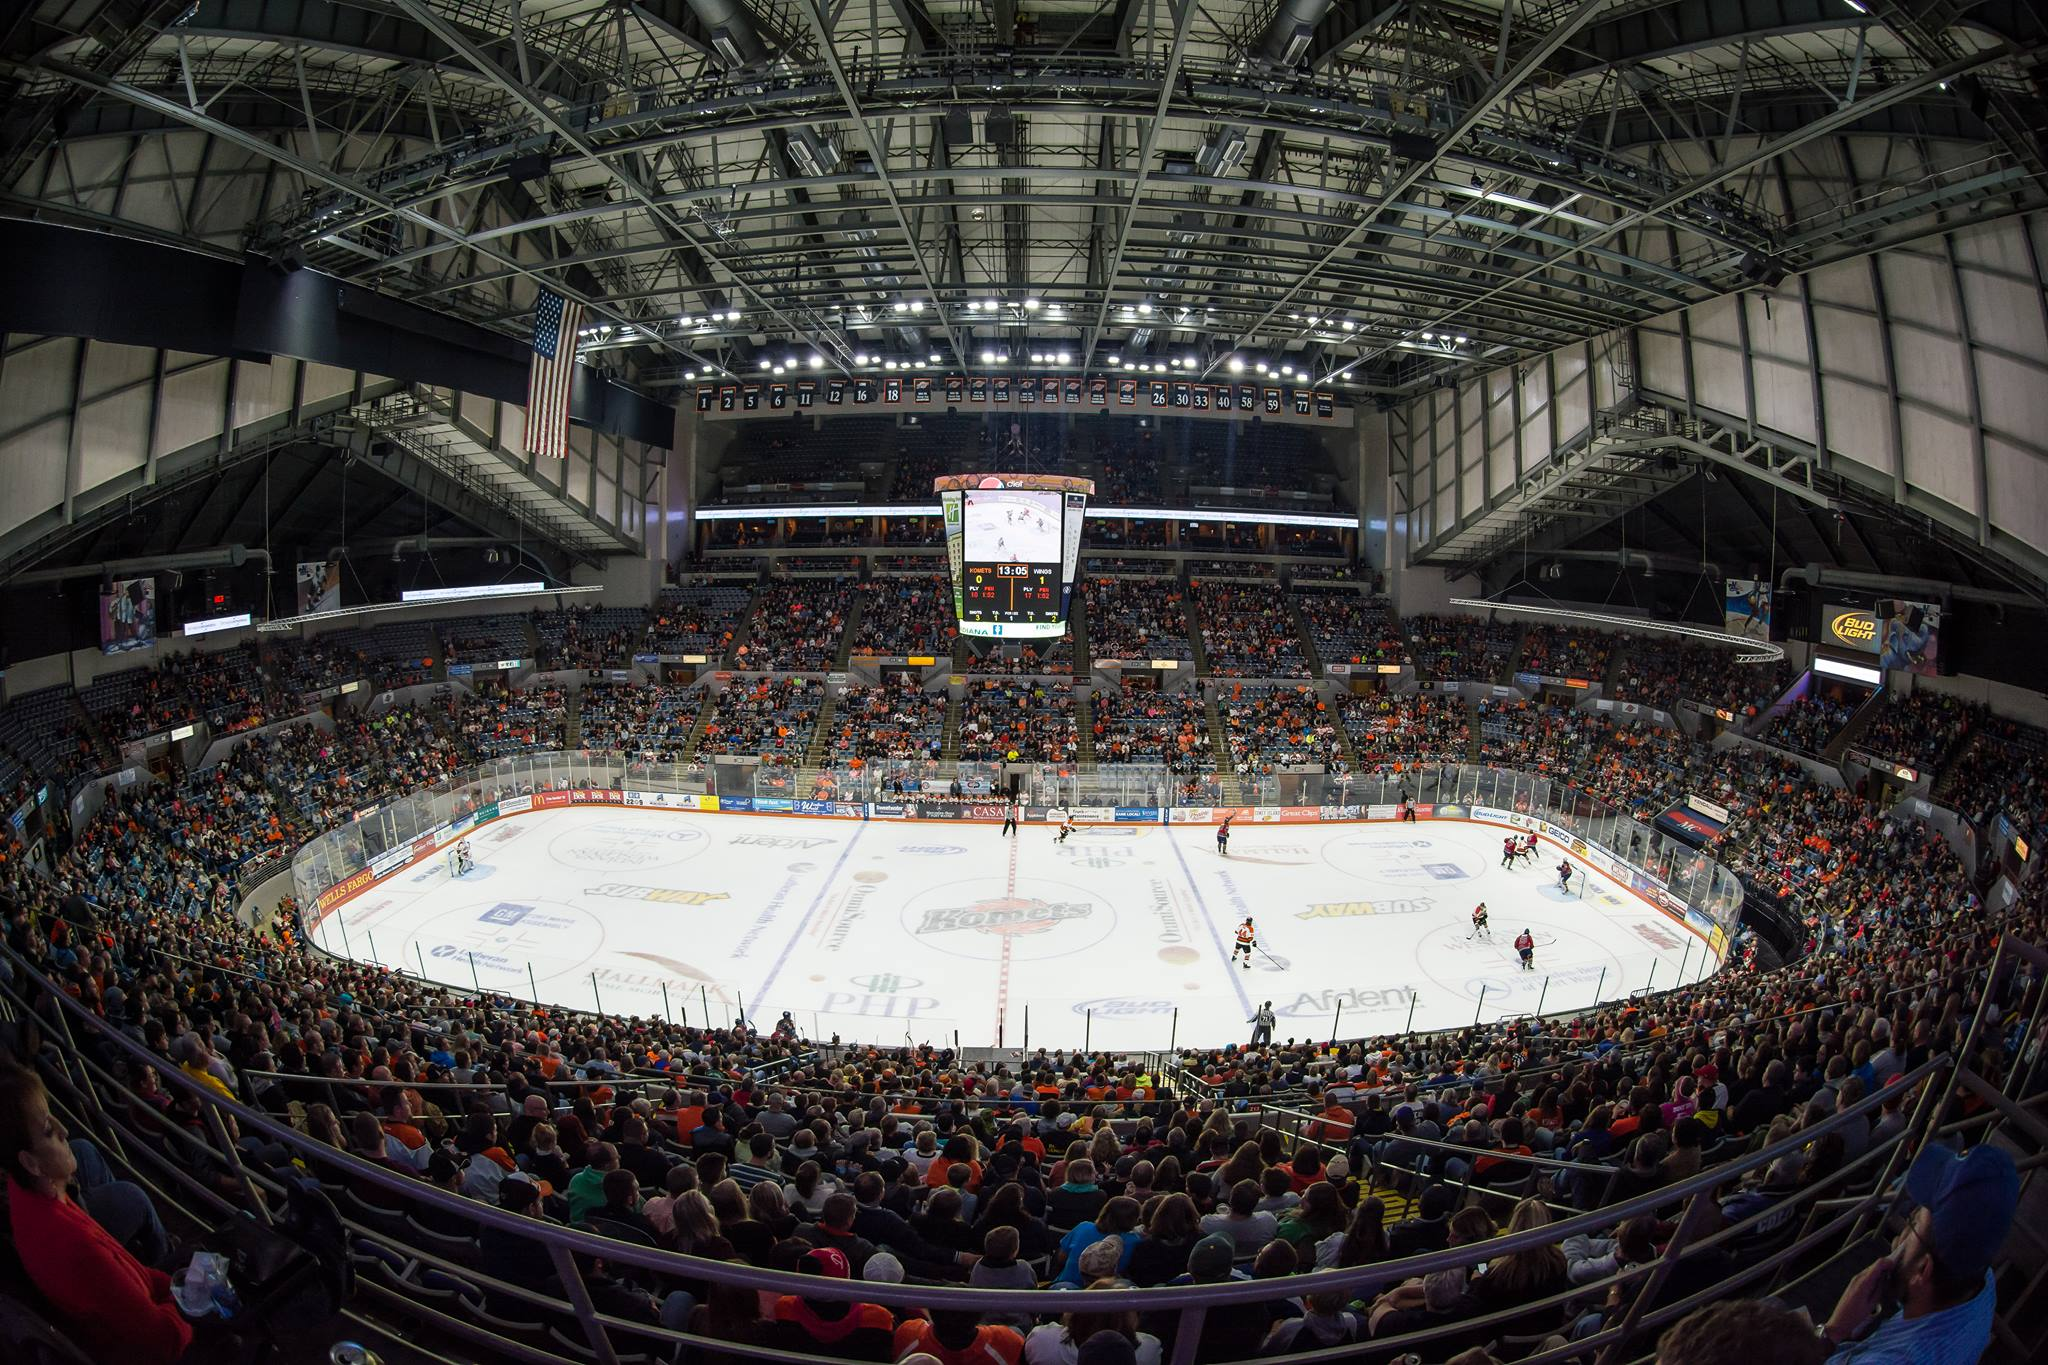 The arena at the Allen County War Memorial Coliseum comes to life when the Komets are in town!